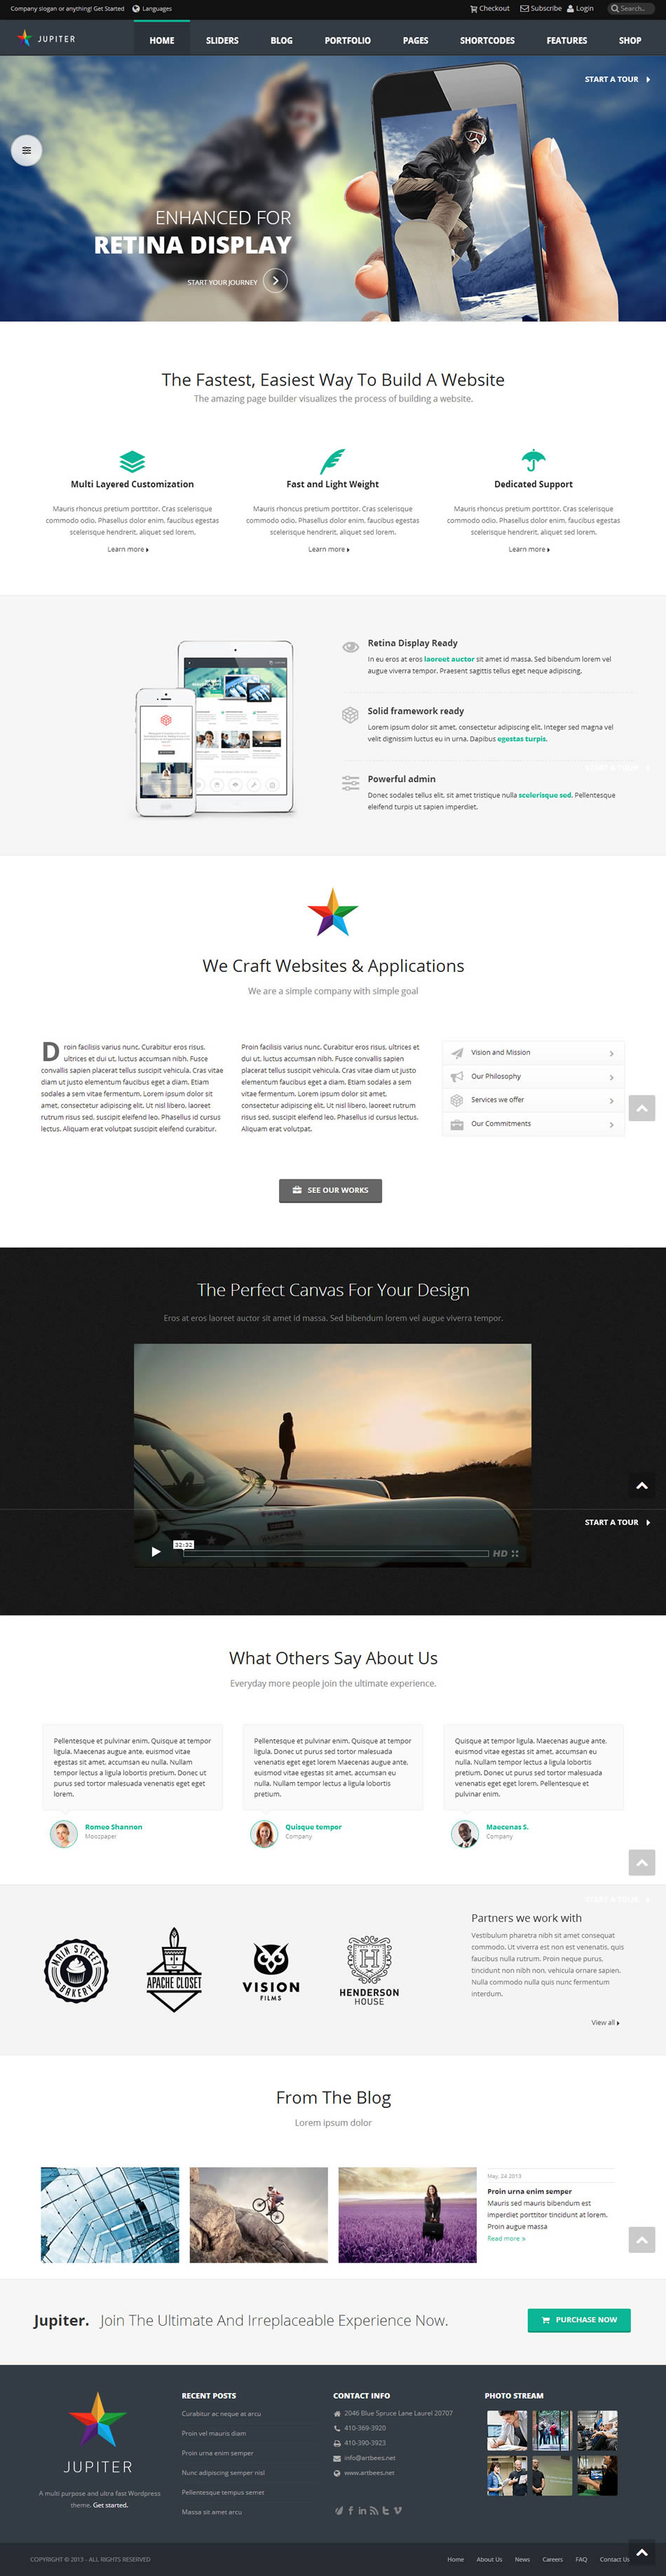 jupiter wordpress theme screenshot